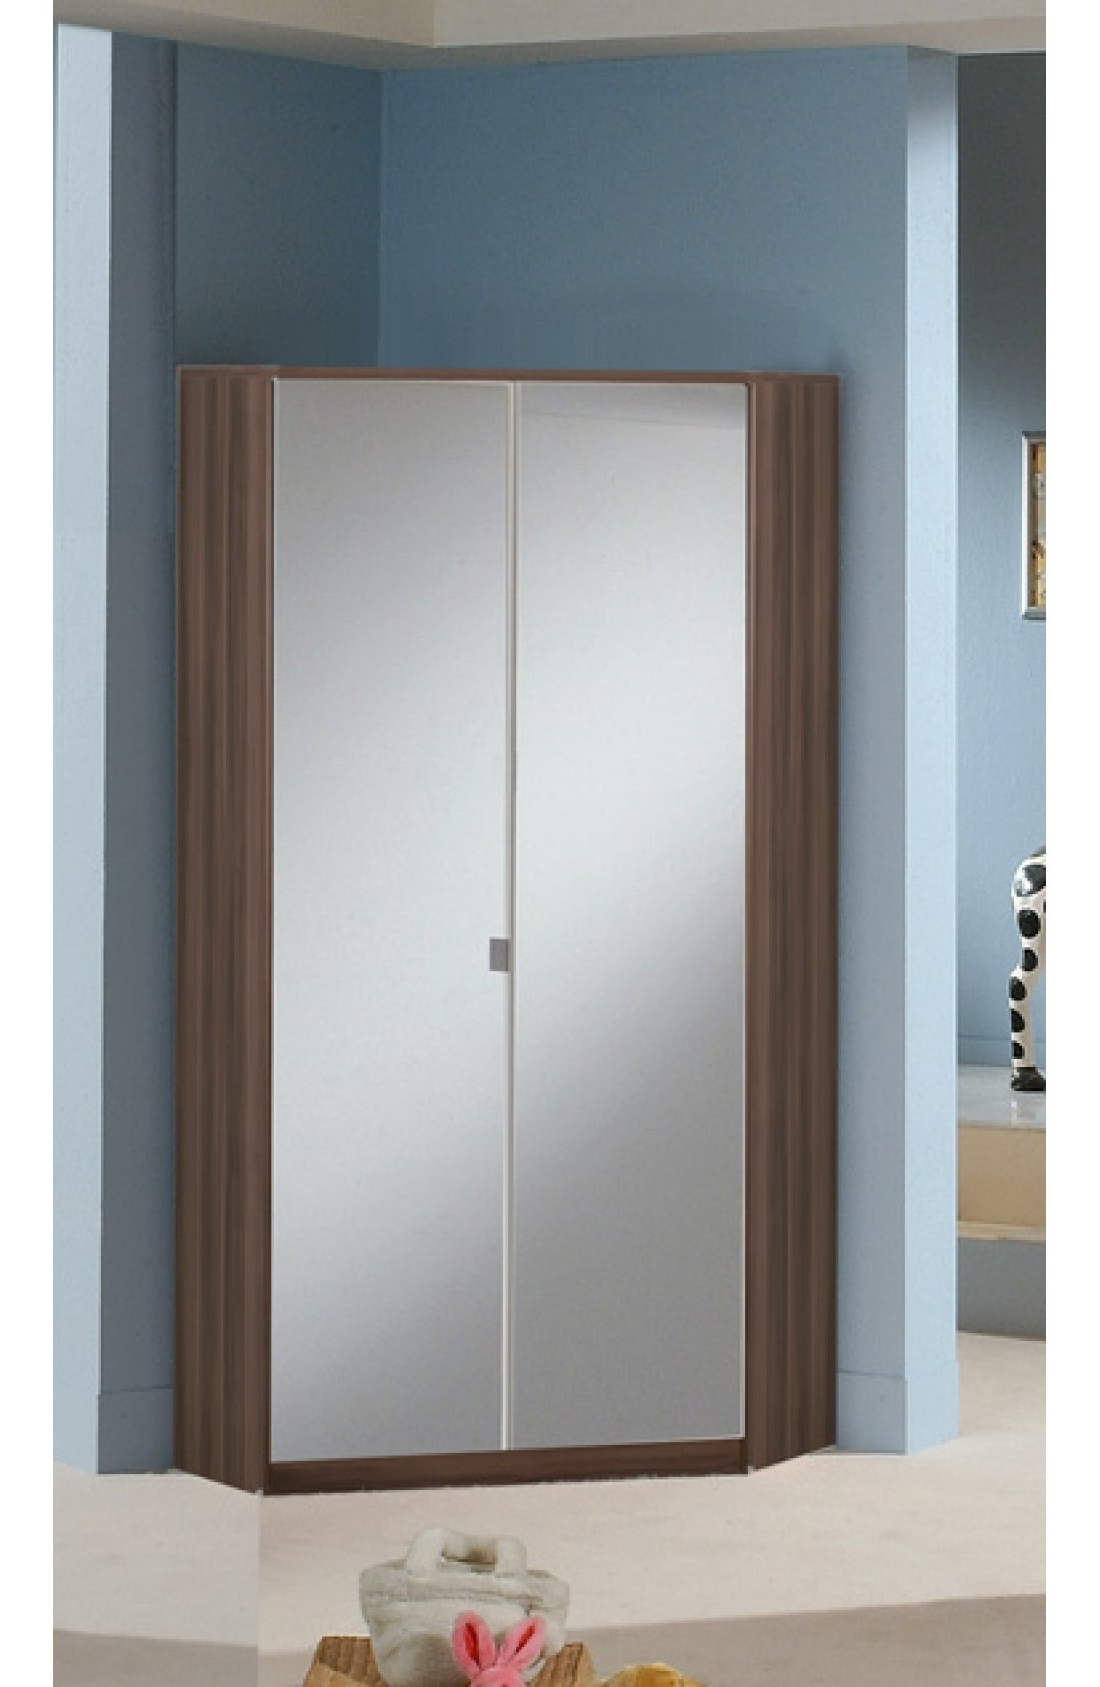 2 Door Corner Wardrobes For Preferred Slumberhaus Gamma German Made Modern Walnut And Mirror 2 Door (View 1 of 15)